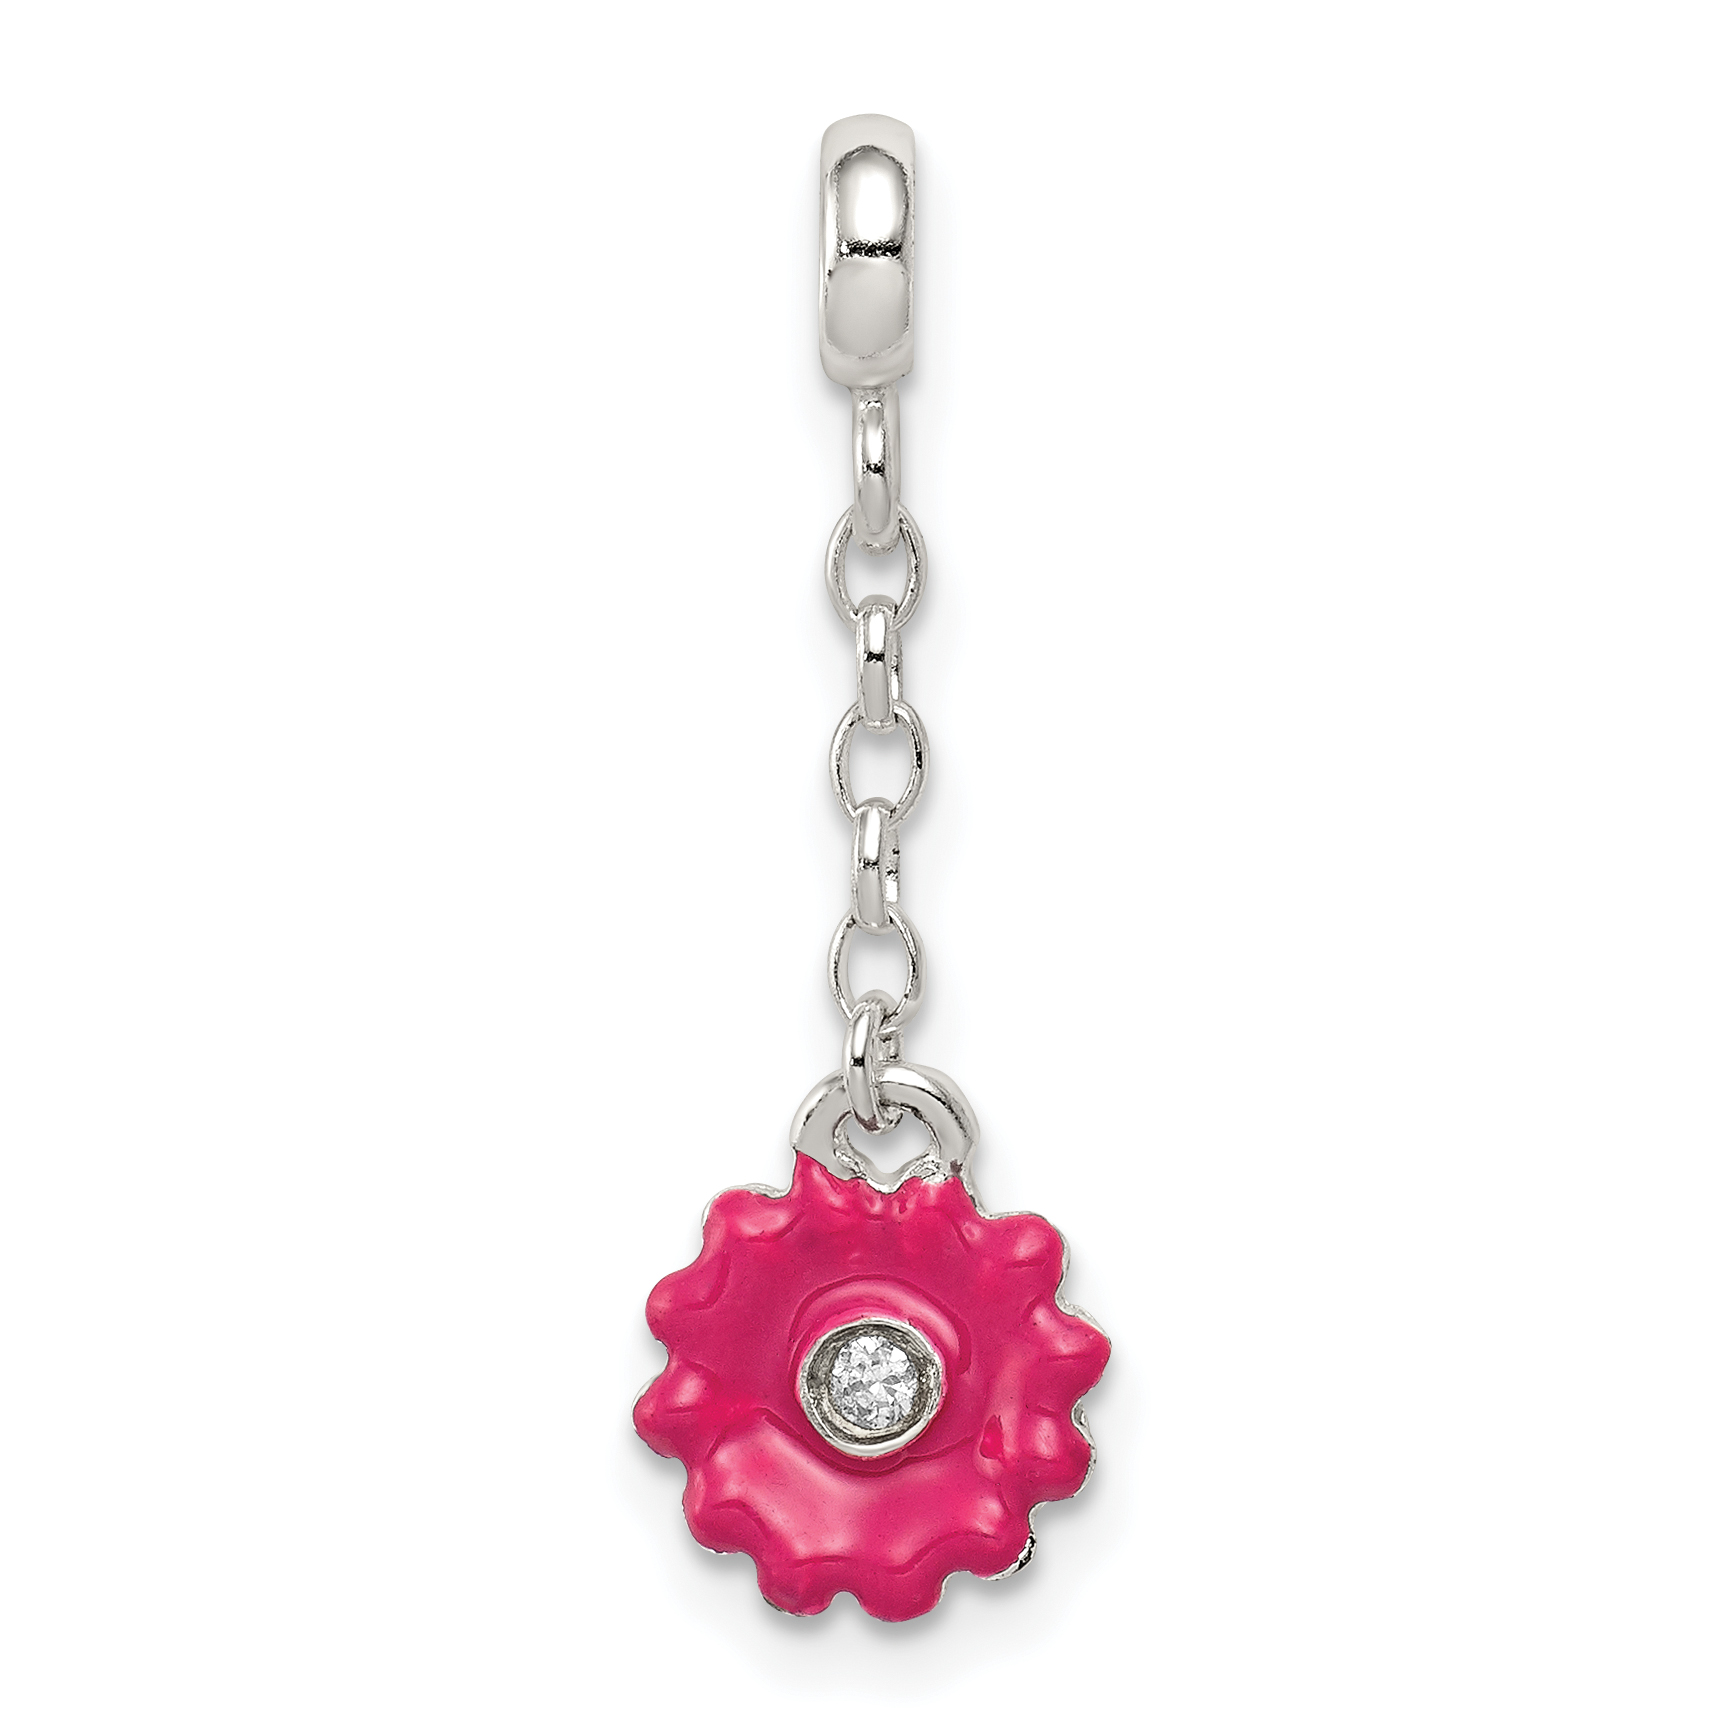 925 Sterling Silver Pink Enamel Flower Cubic Zirconia Cz 1/2in Dangle Enhancer Necklace Pendant Charm Gardening Fine Jewelry Gifts For Women For Her - image 2 of 2